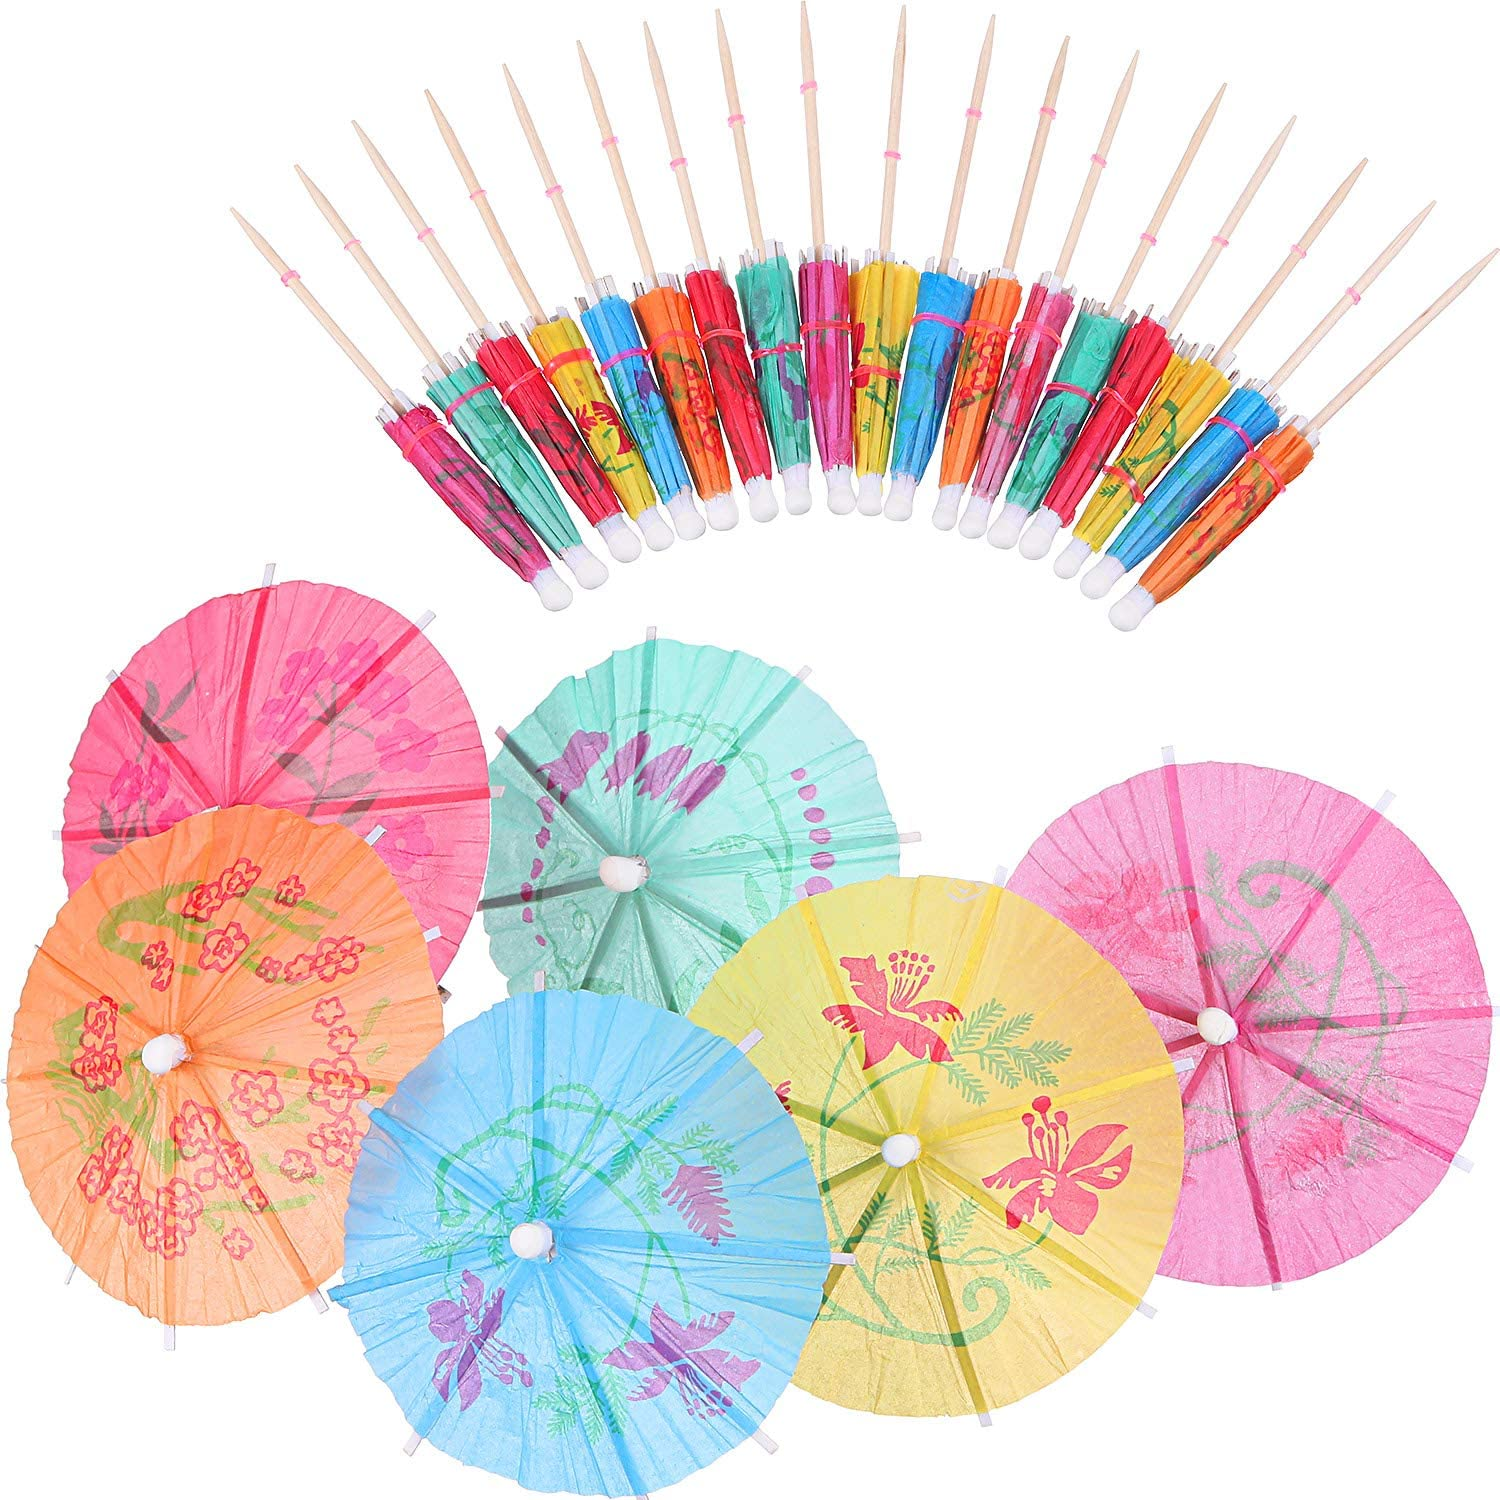 Boao 288 Pieces Cocktail Umbrella Picks Drink Picks Cocktail Parasols Assorted Umbrella Parasol Paper Cupcake Toppers for Party Favours Party Supplies